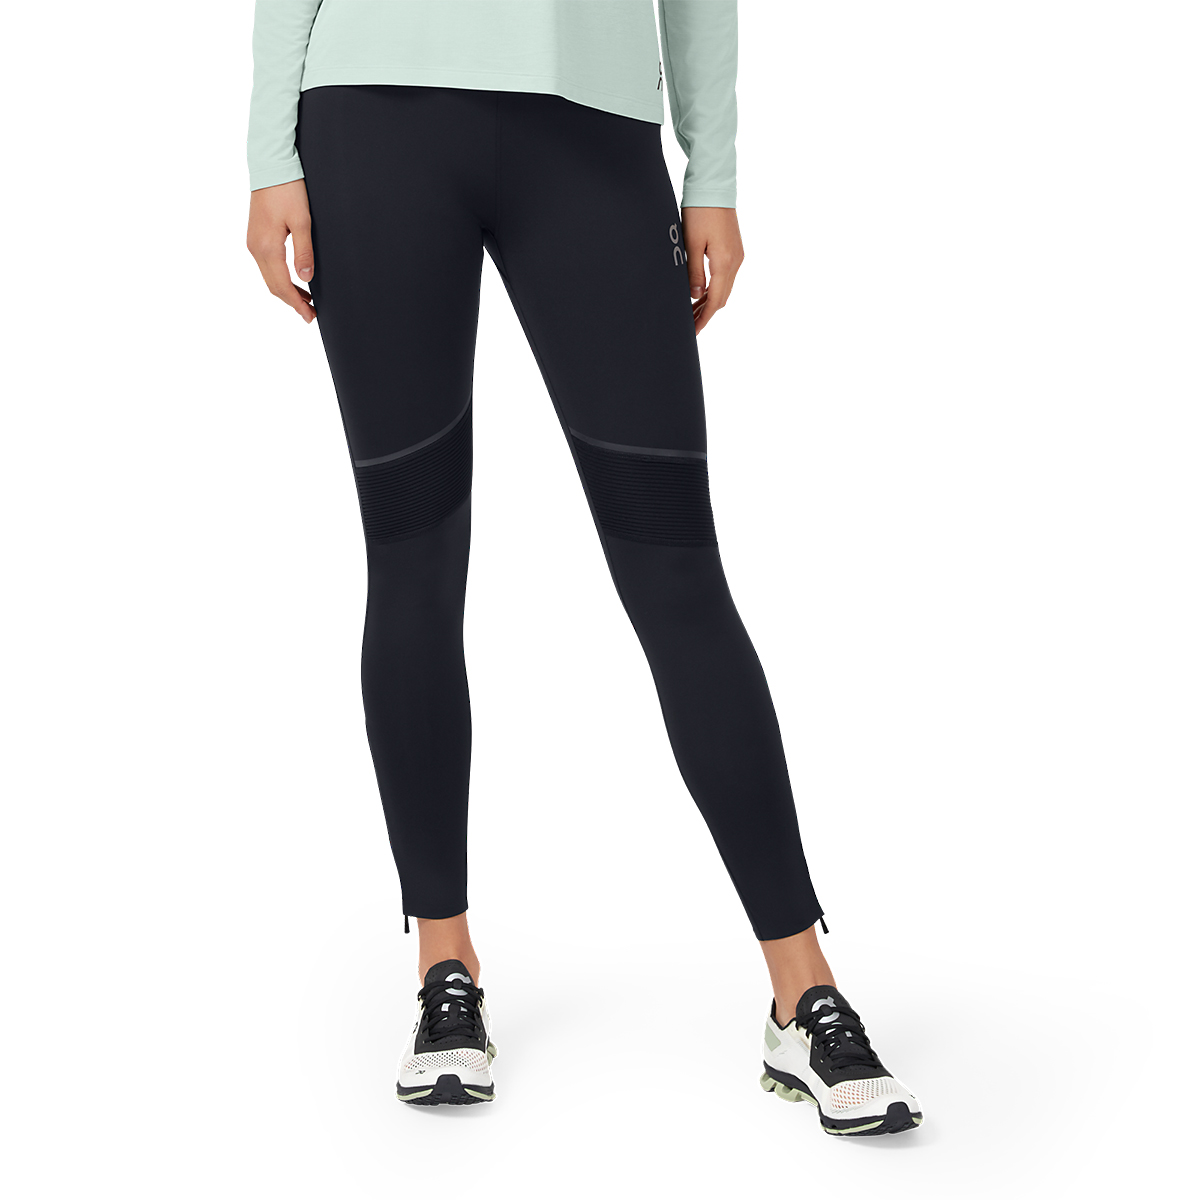 Women's On Tights Long - Color: Black - Size: XS, Black, large, image 1